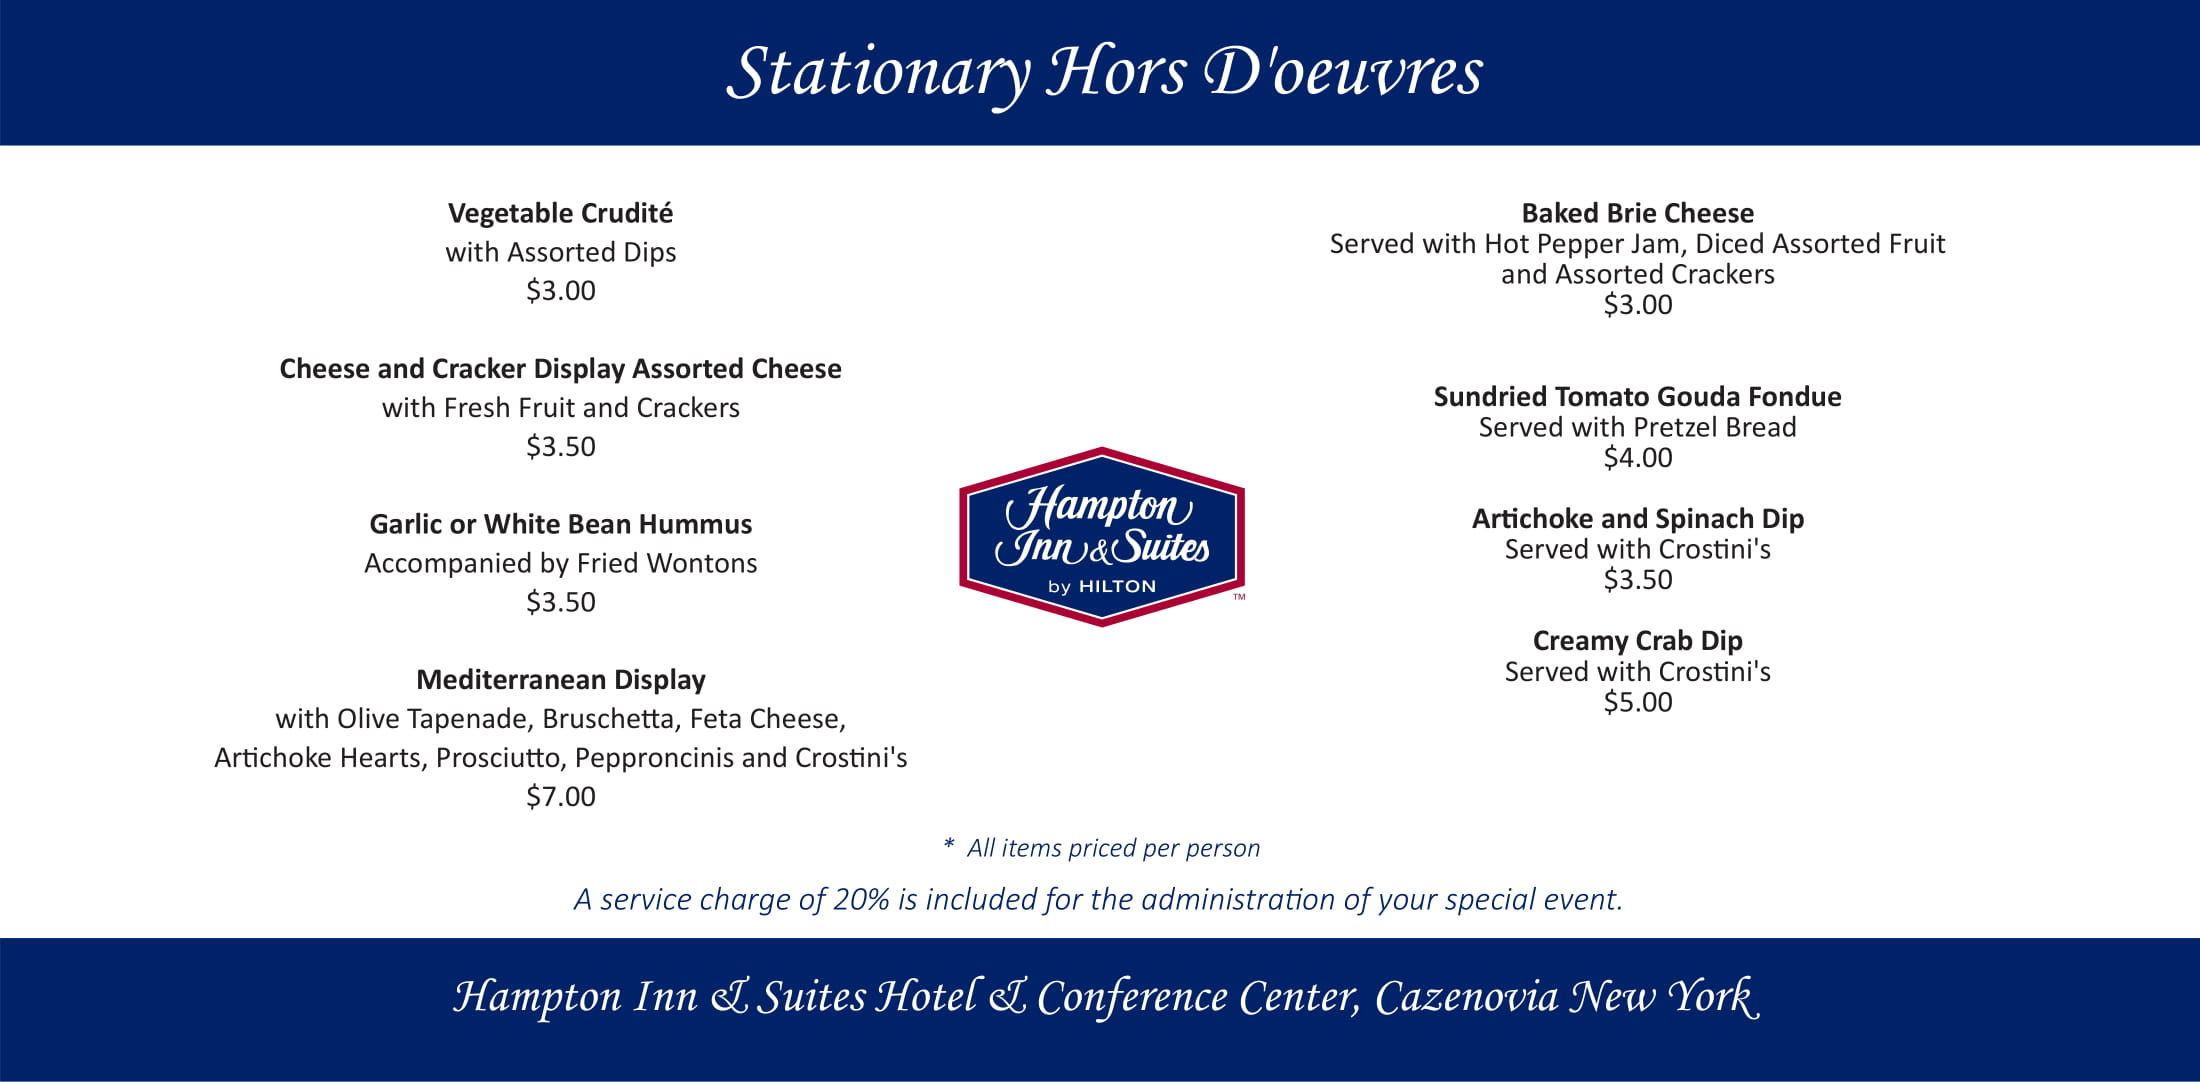 Stationary Hors D'oeuvres